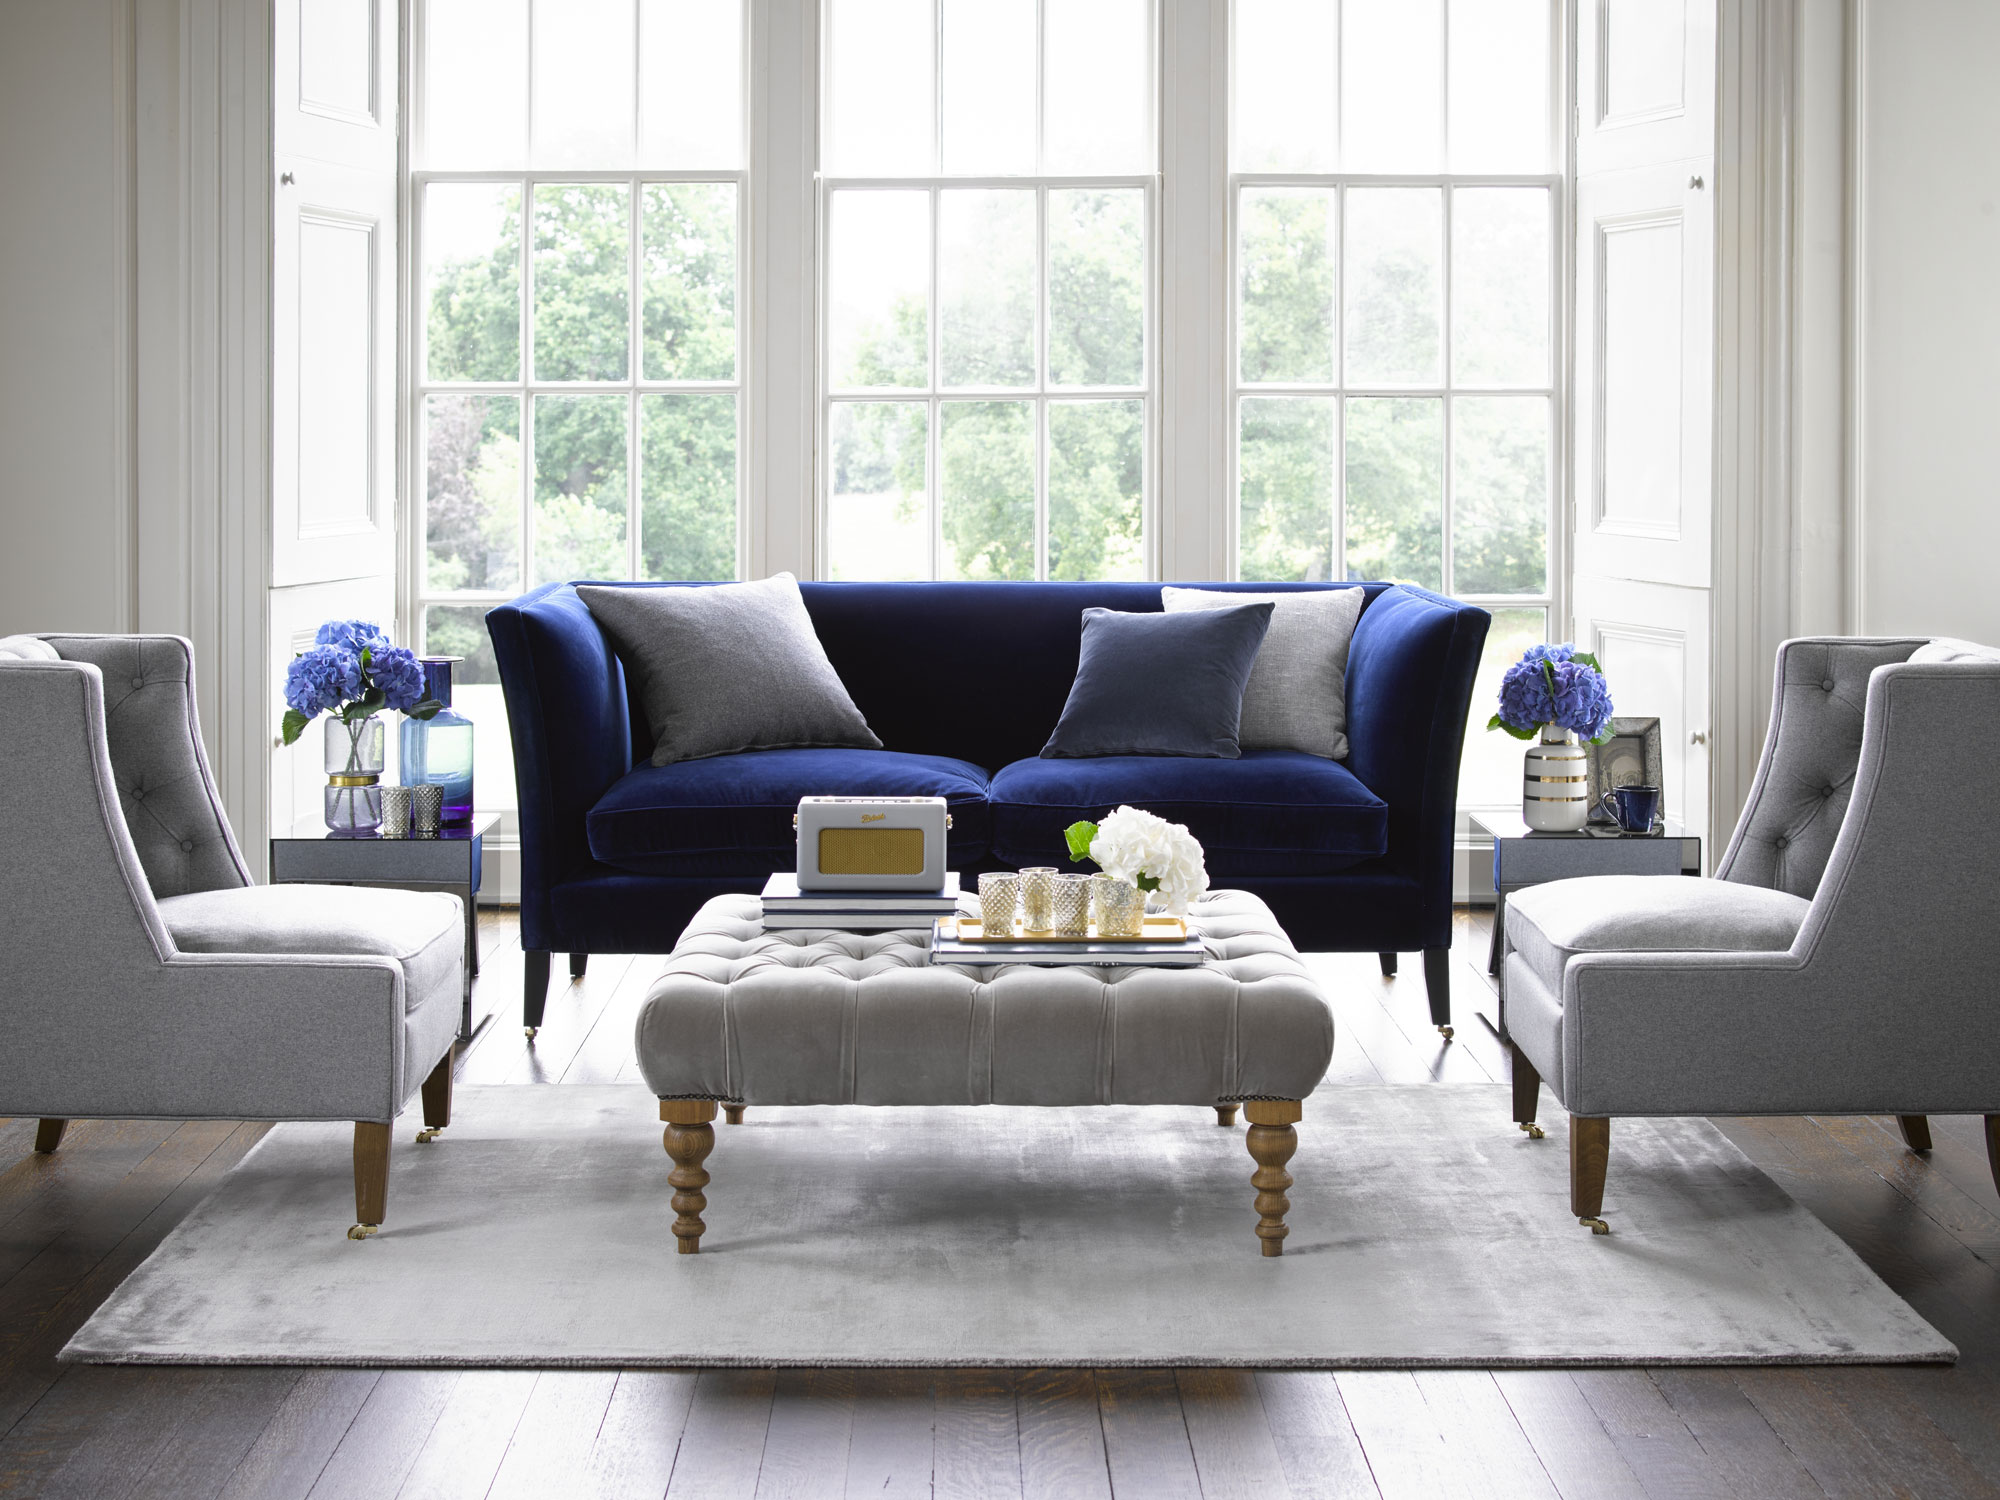 sally-cullen-interiors-19.jpg